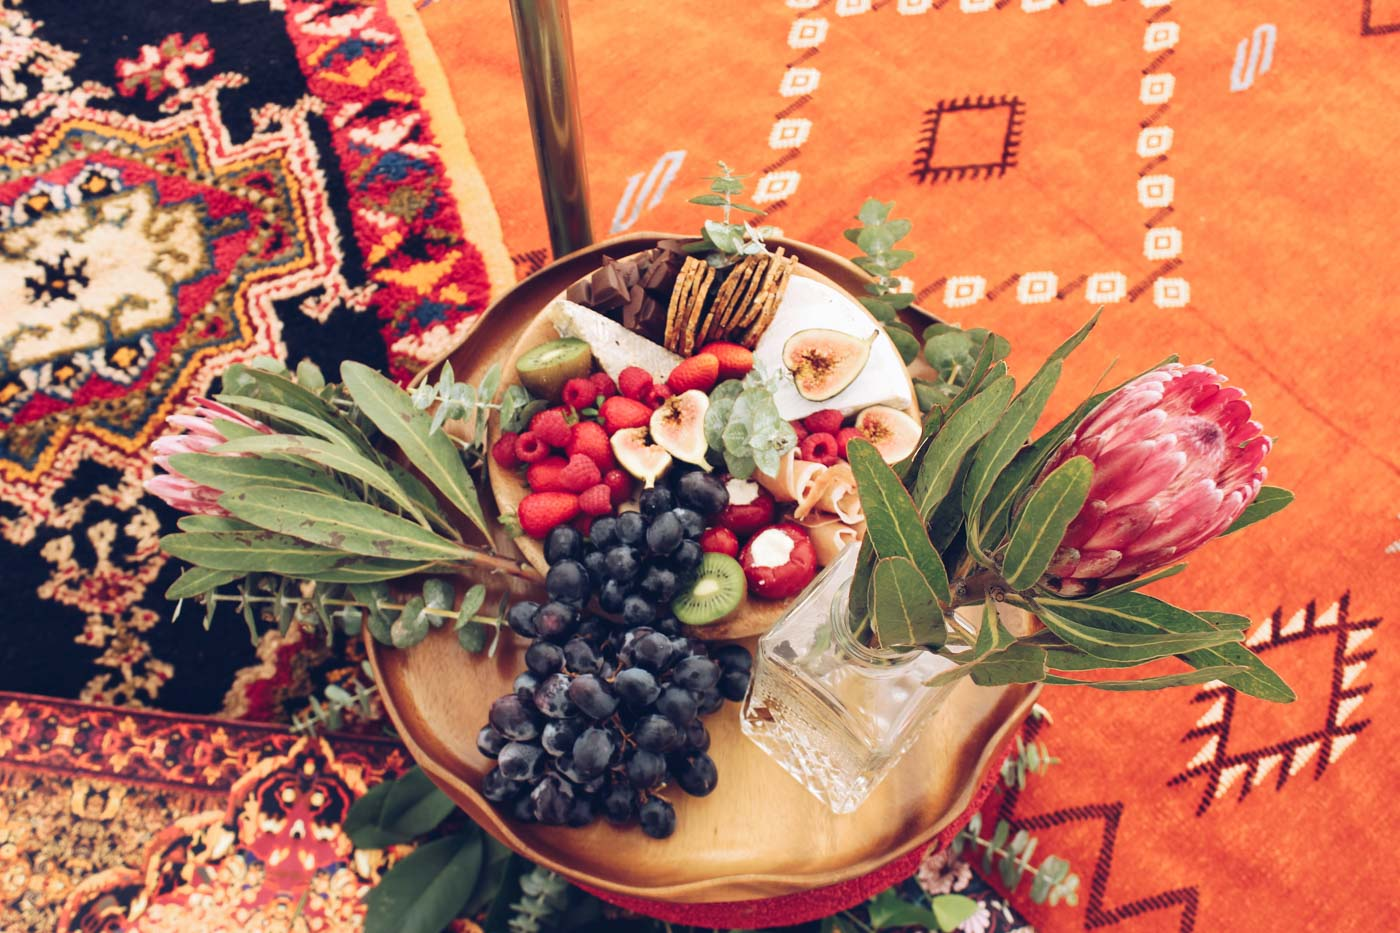 the_Collection_co_grazing_table_cairns_weddings_catering_grazing_platter_hire_pop_up_picnic_bell_tent_event_hire_styling-36-2.jpg